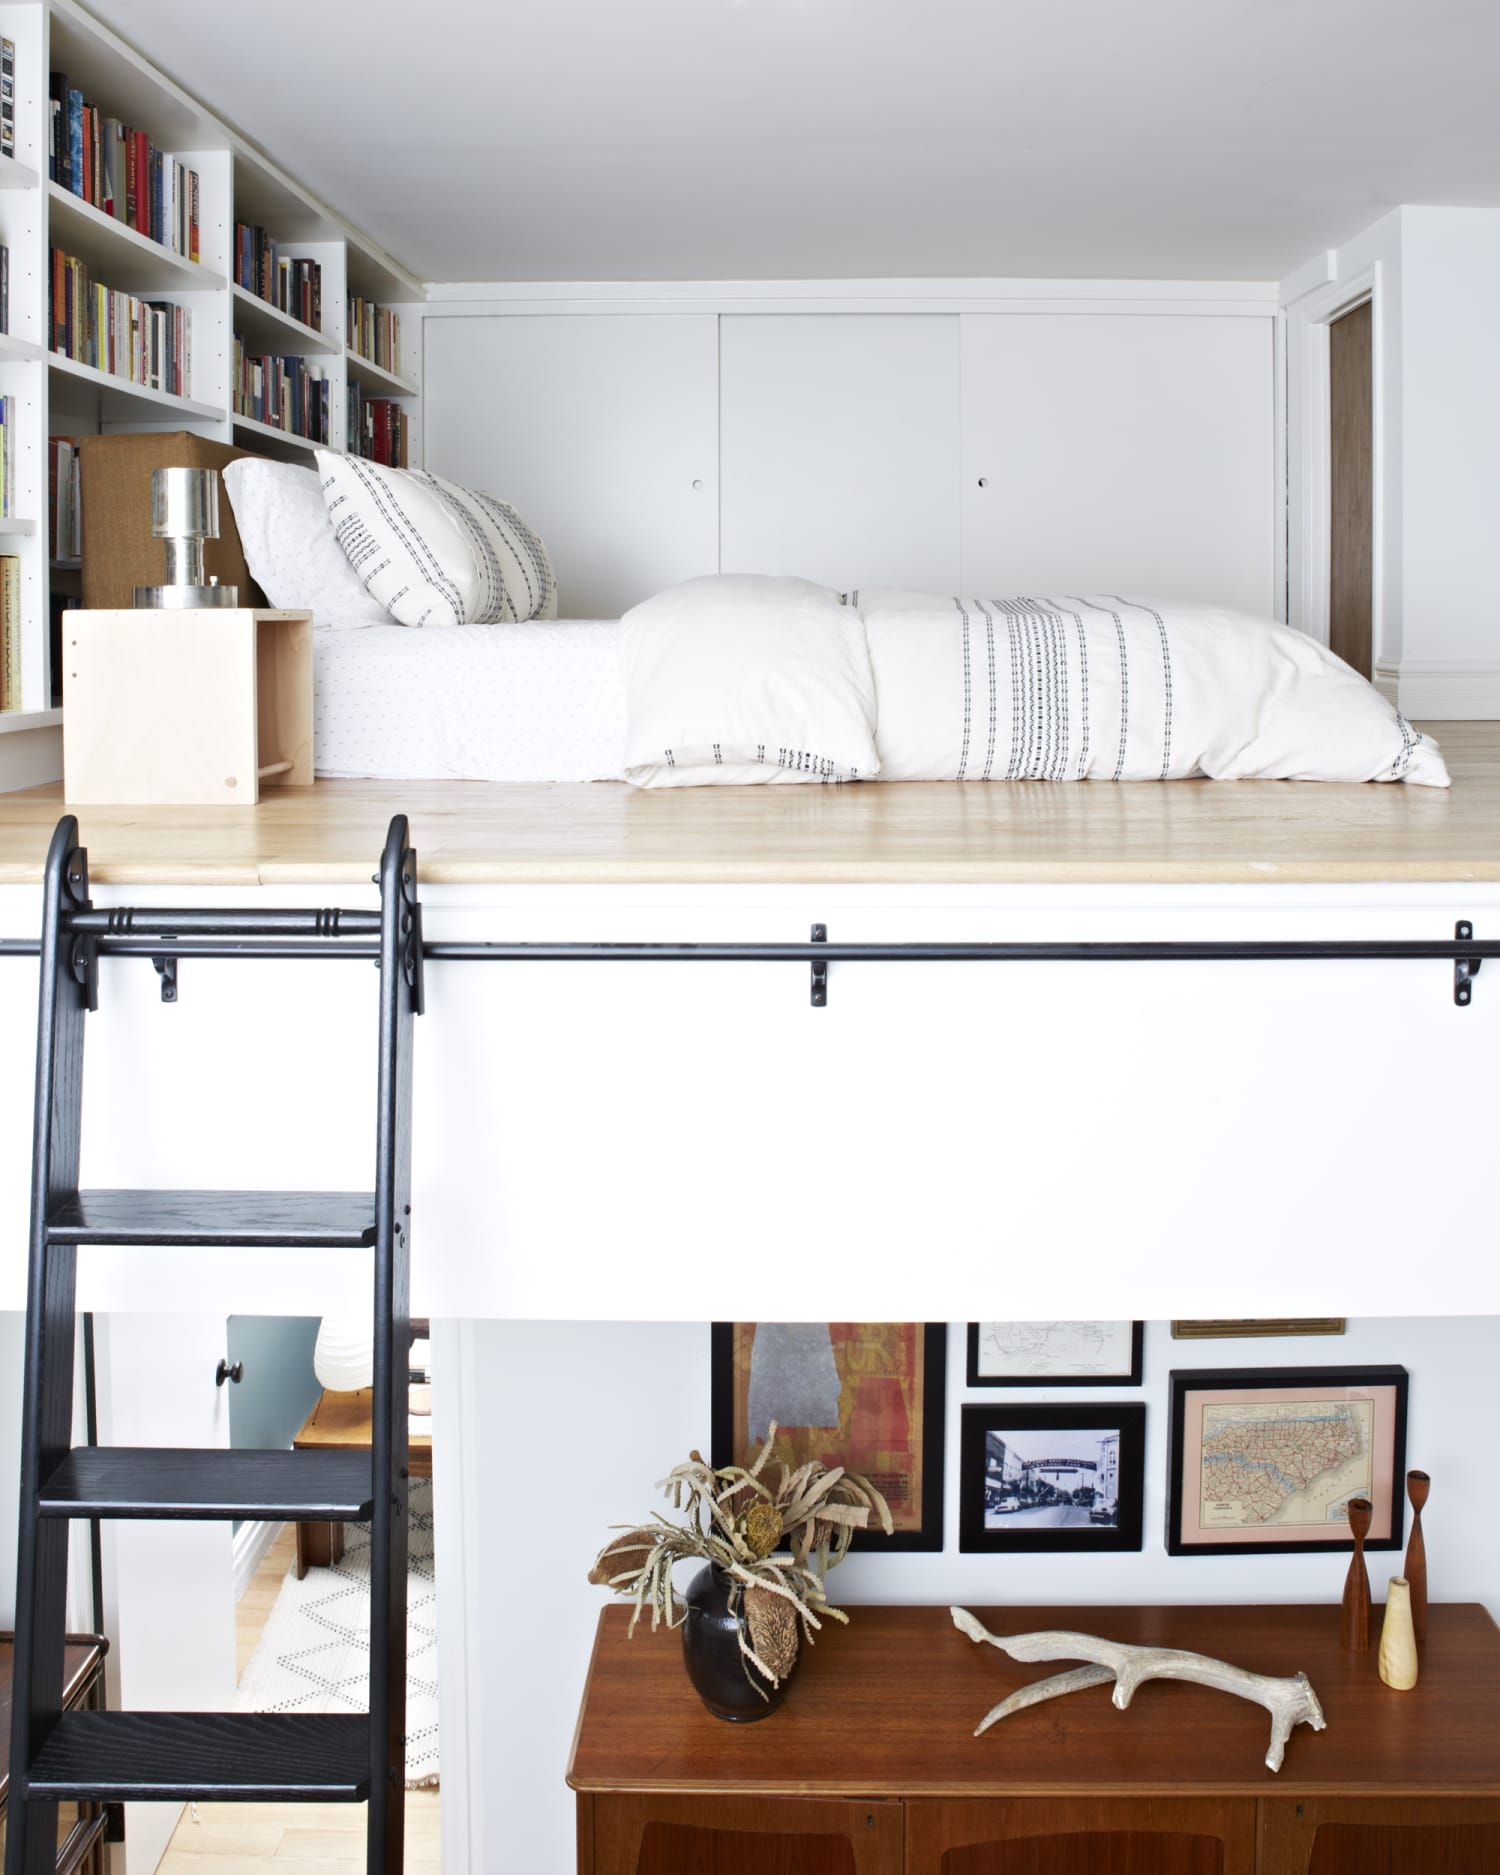 7 Loft Bed Ideas You Can Still Try, Even Though You're an Adult